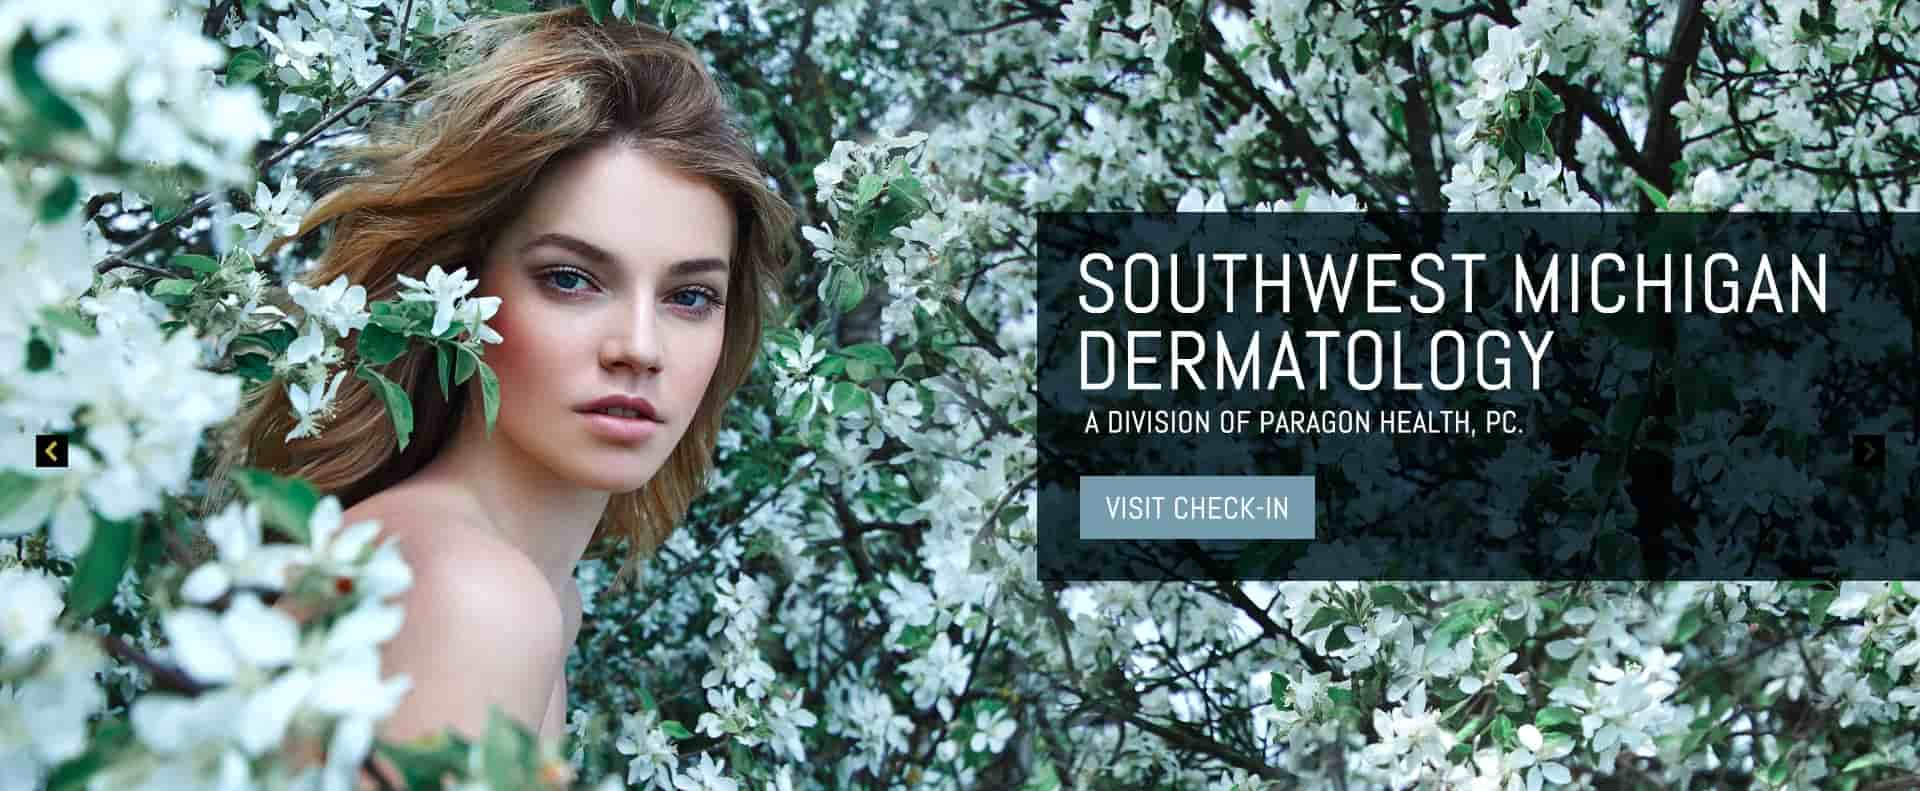 Welcome to Southwest Michigan Dermatology